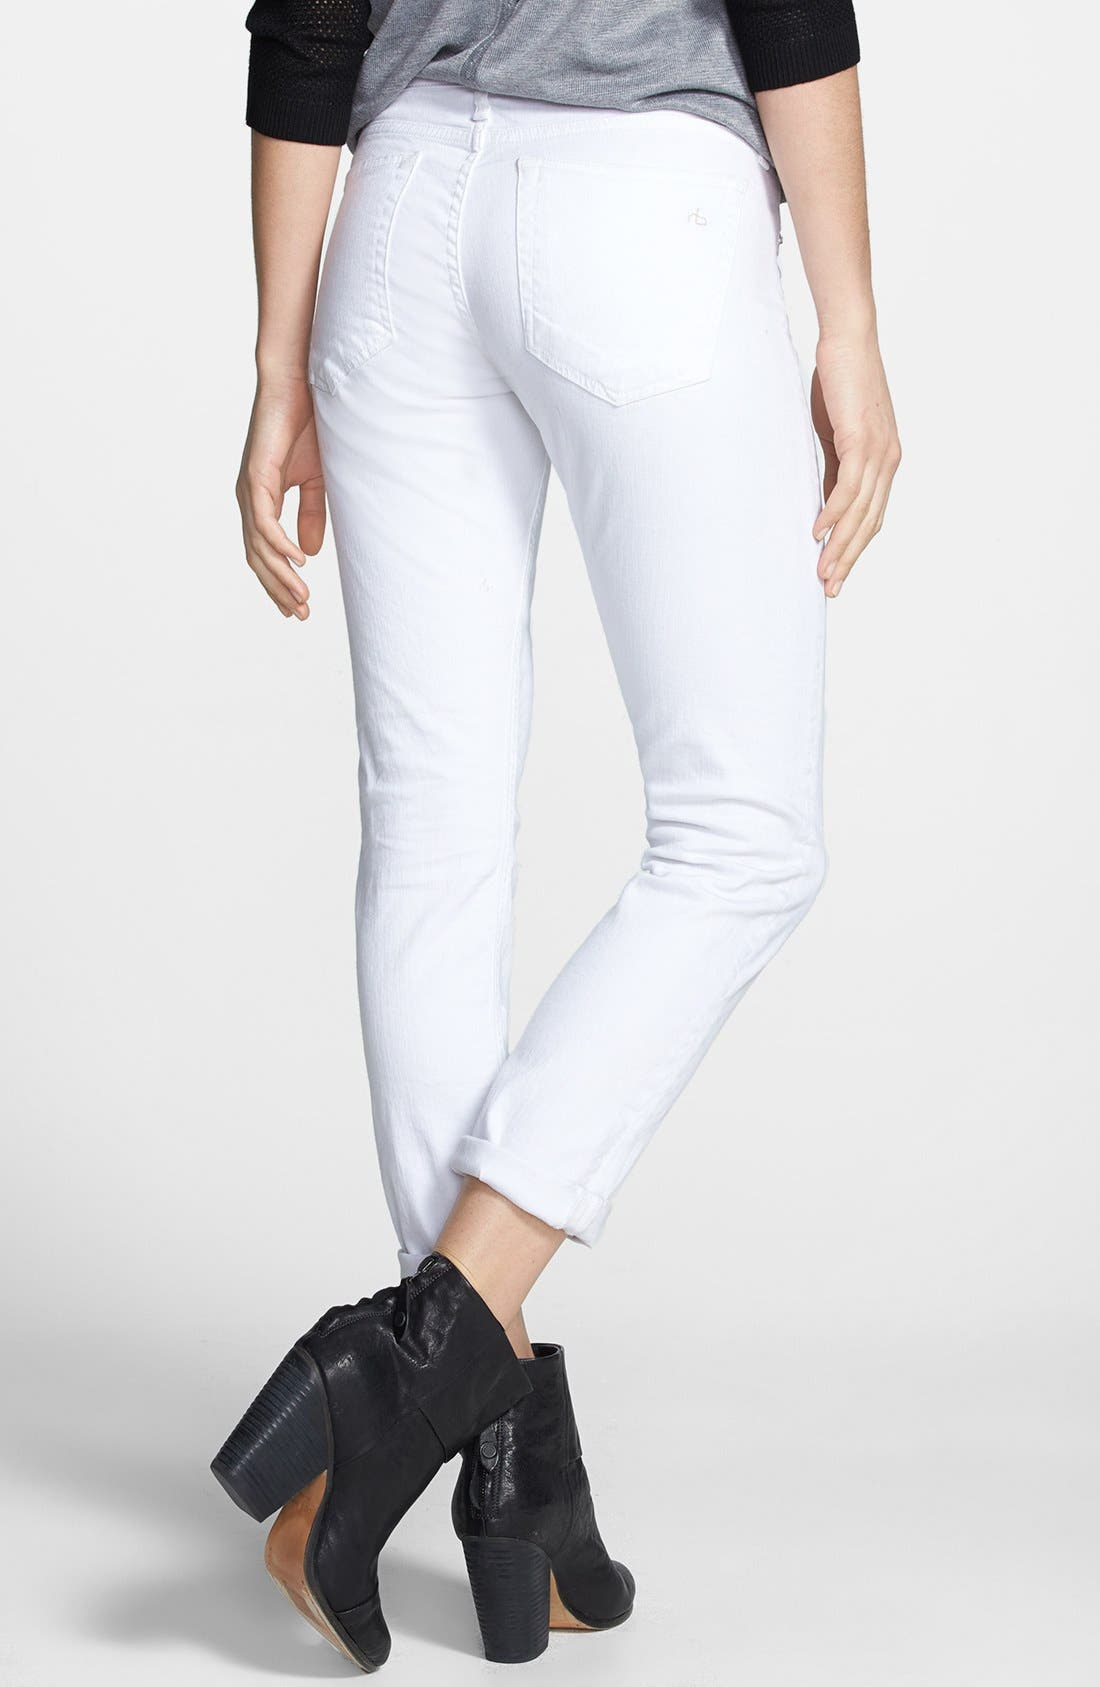 Alternate Image 2  - rag & bone/JEAN 'The Dre' Skinny Jeans (Aged Bright White)